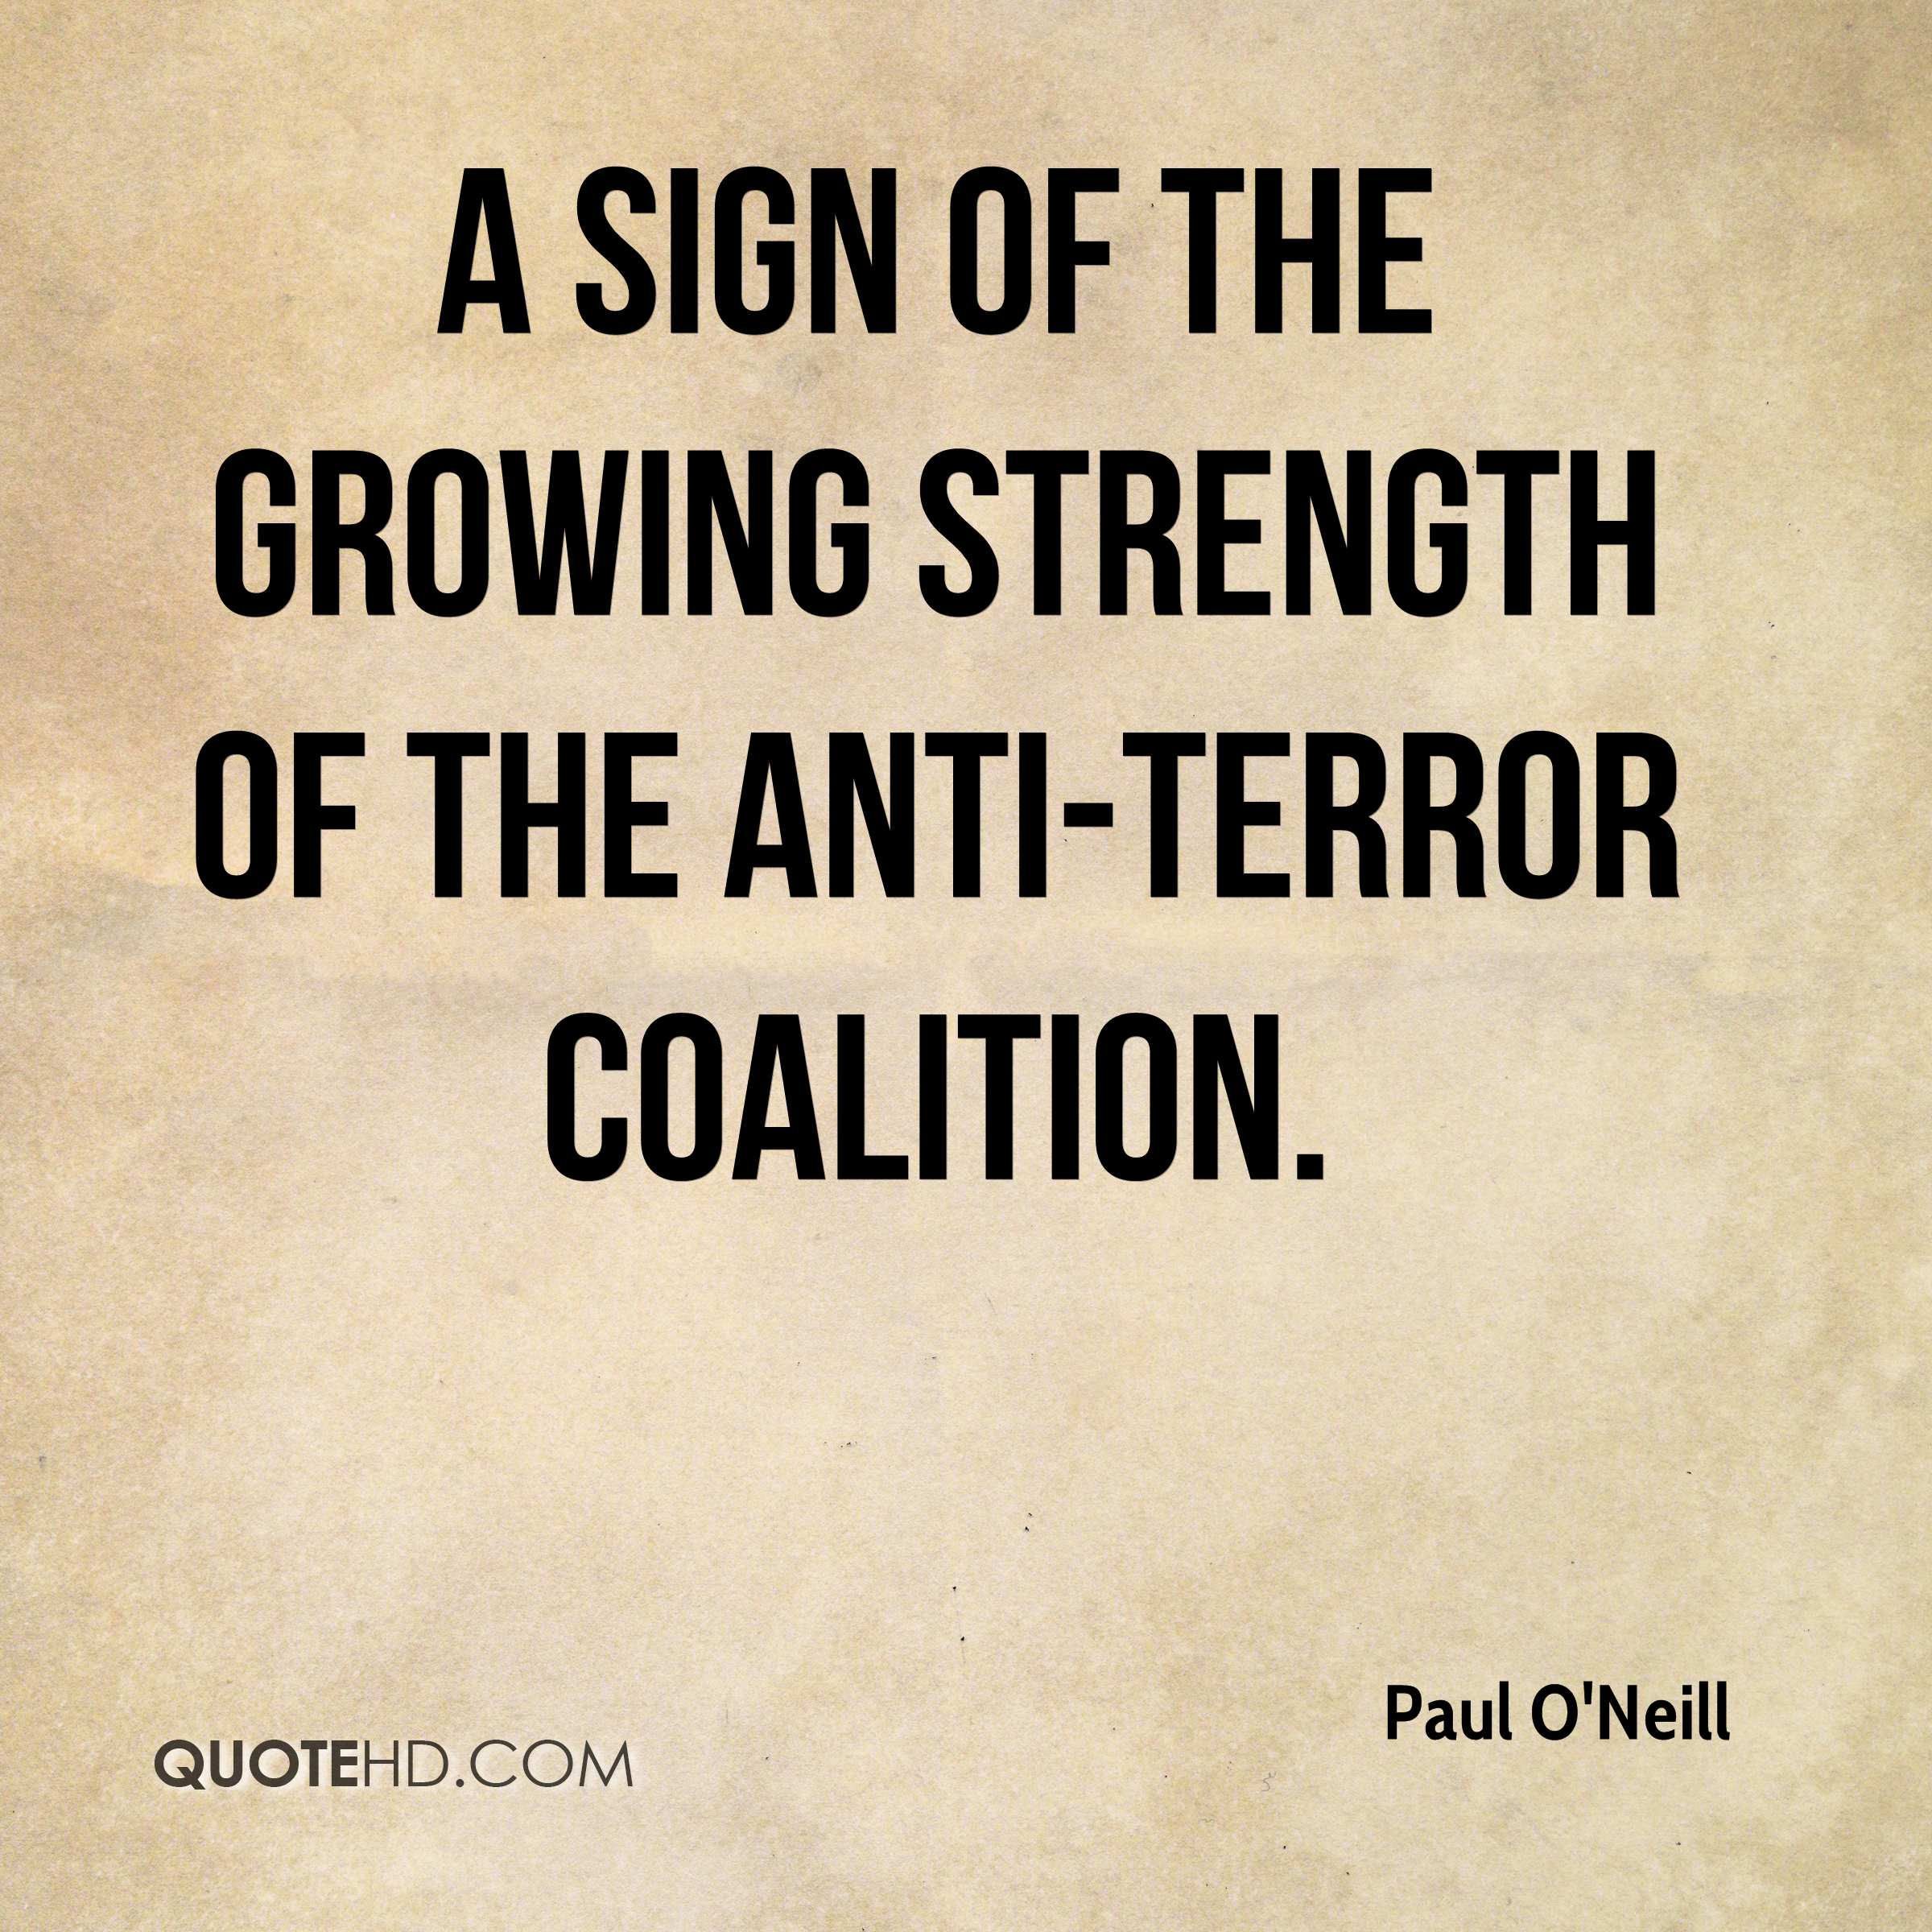 a sign of the growing strength of the anti-terror coalition.